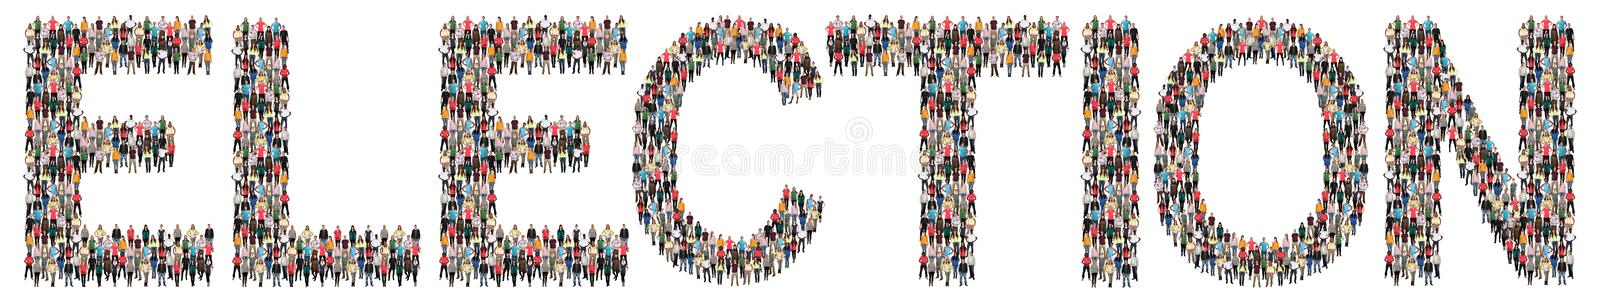 Election vote elections politics multi ethnic group of people stock photos